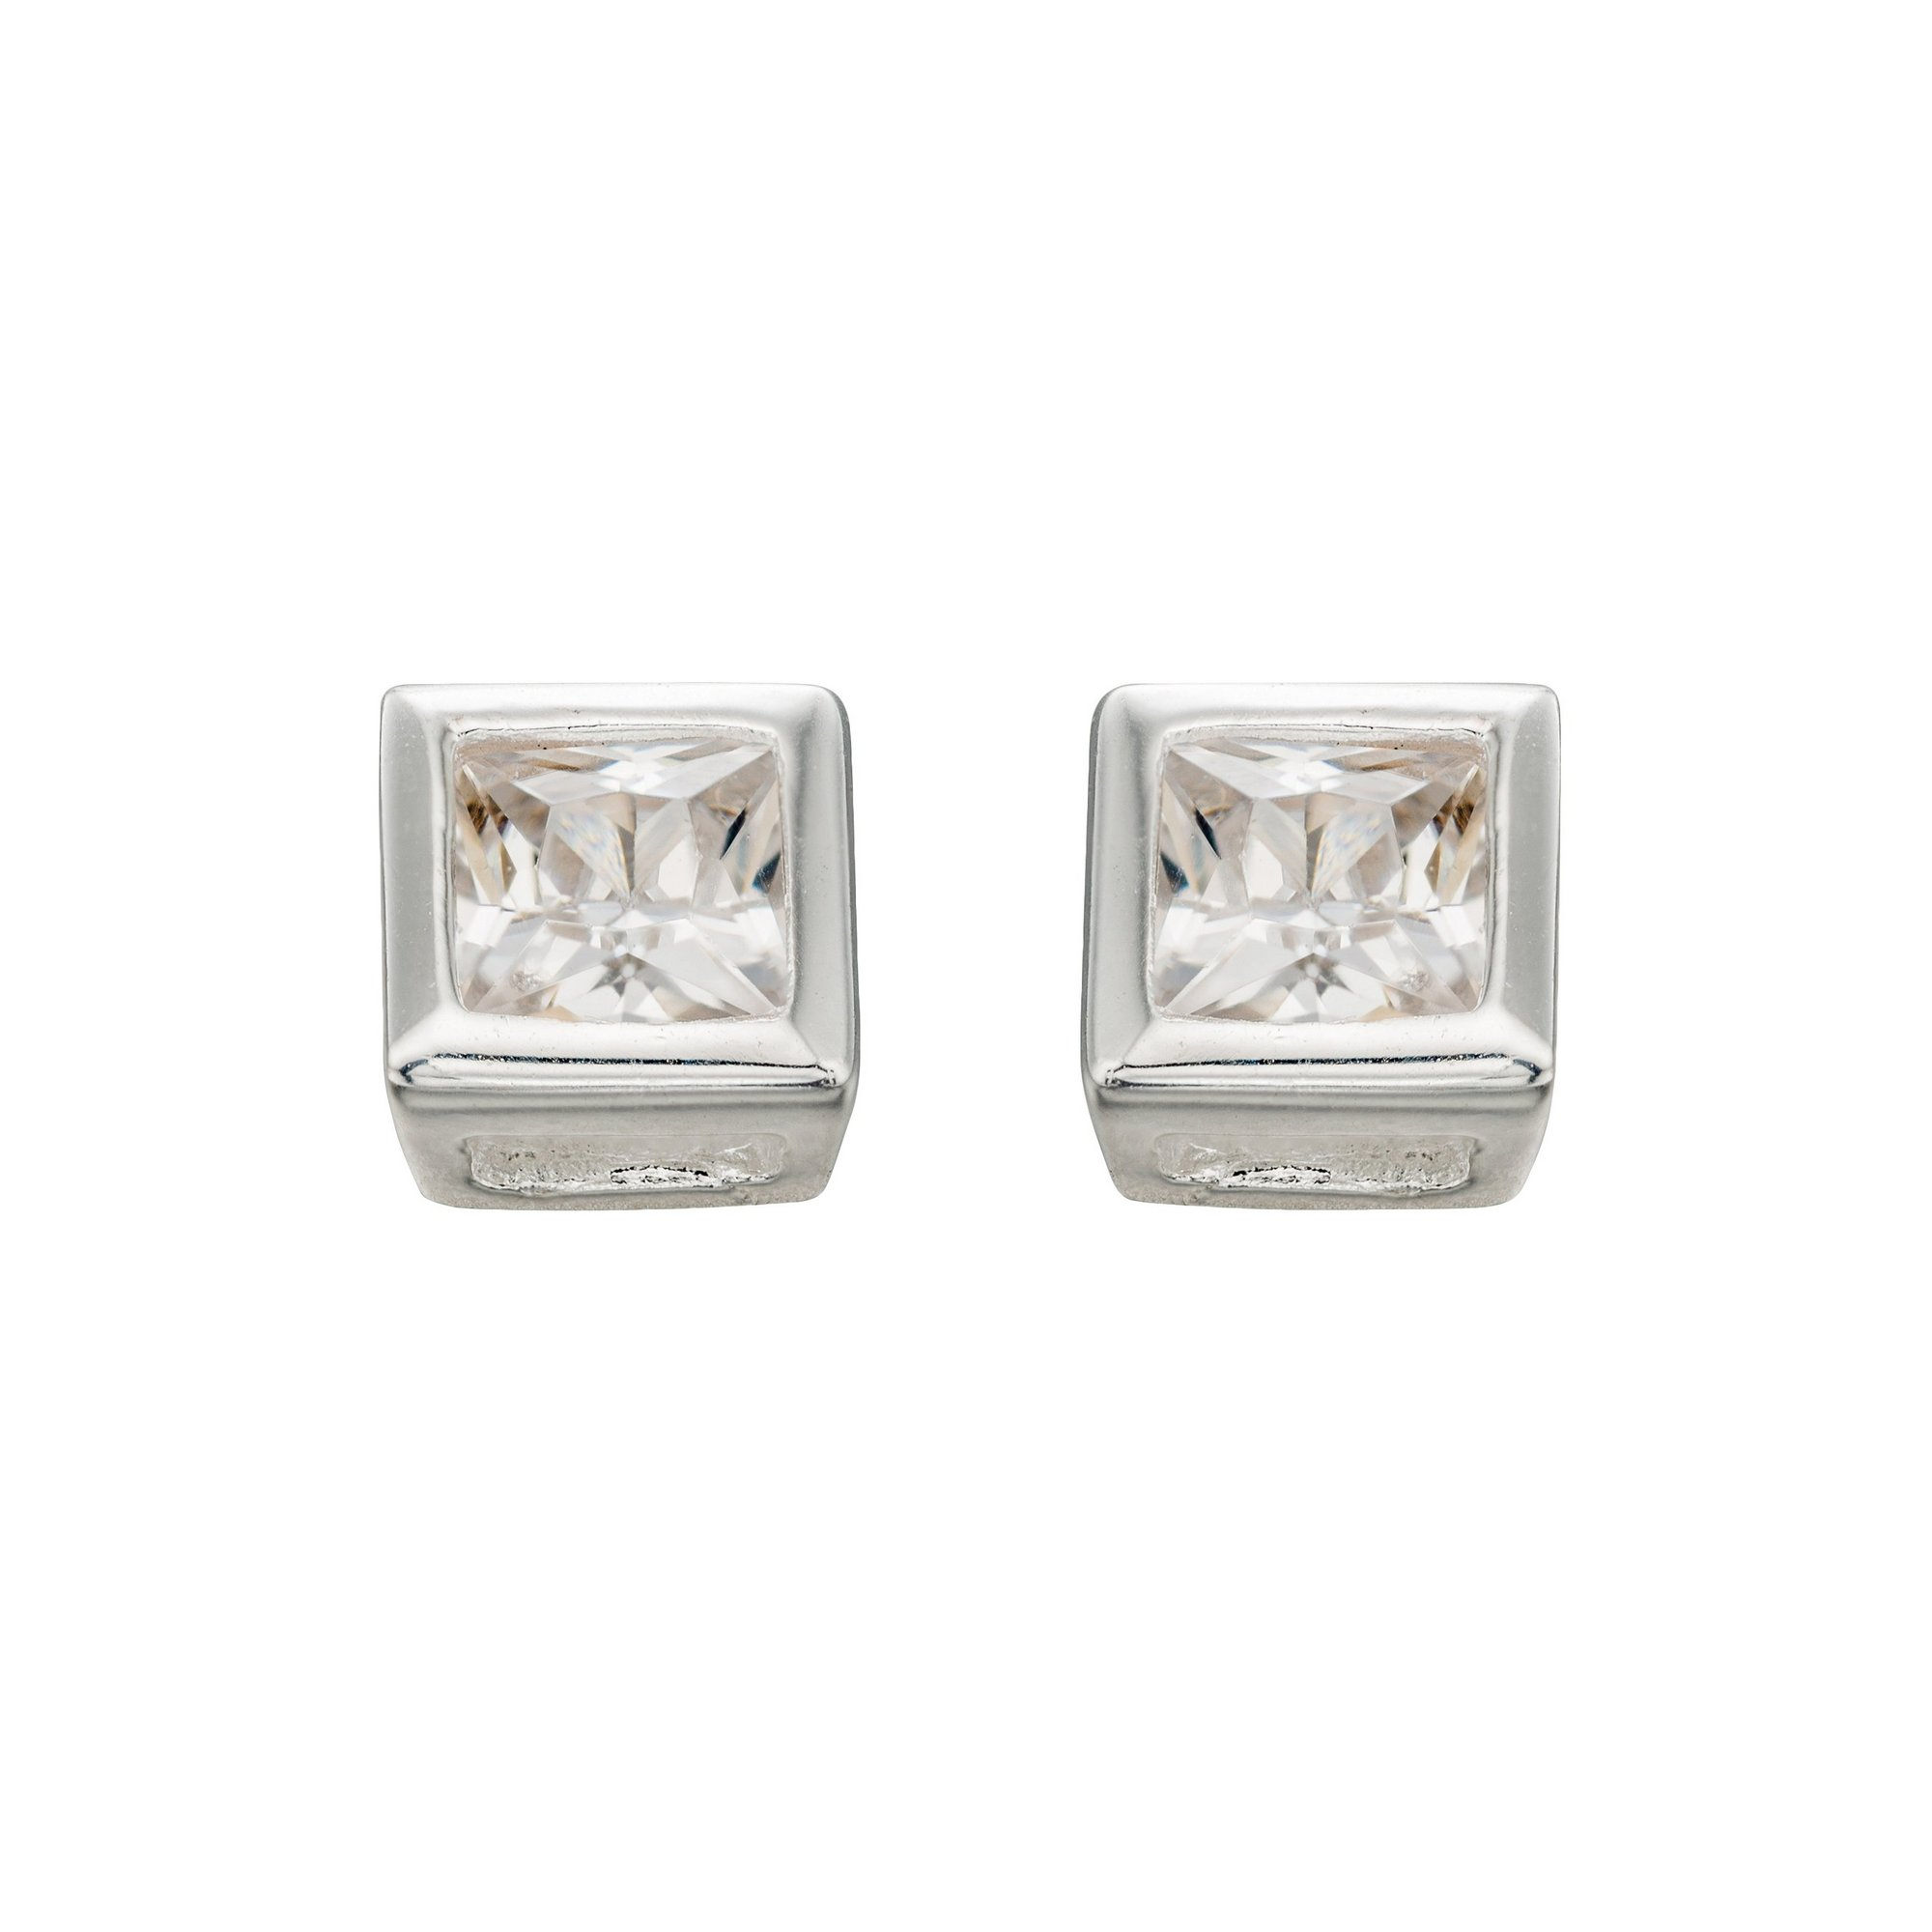 Image of Beginnings Clear CZ 4.5mm Square Stud Earrings